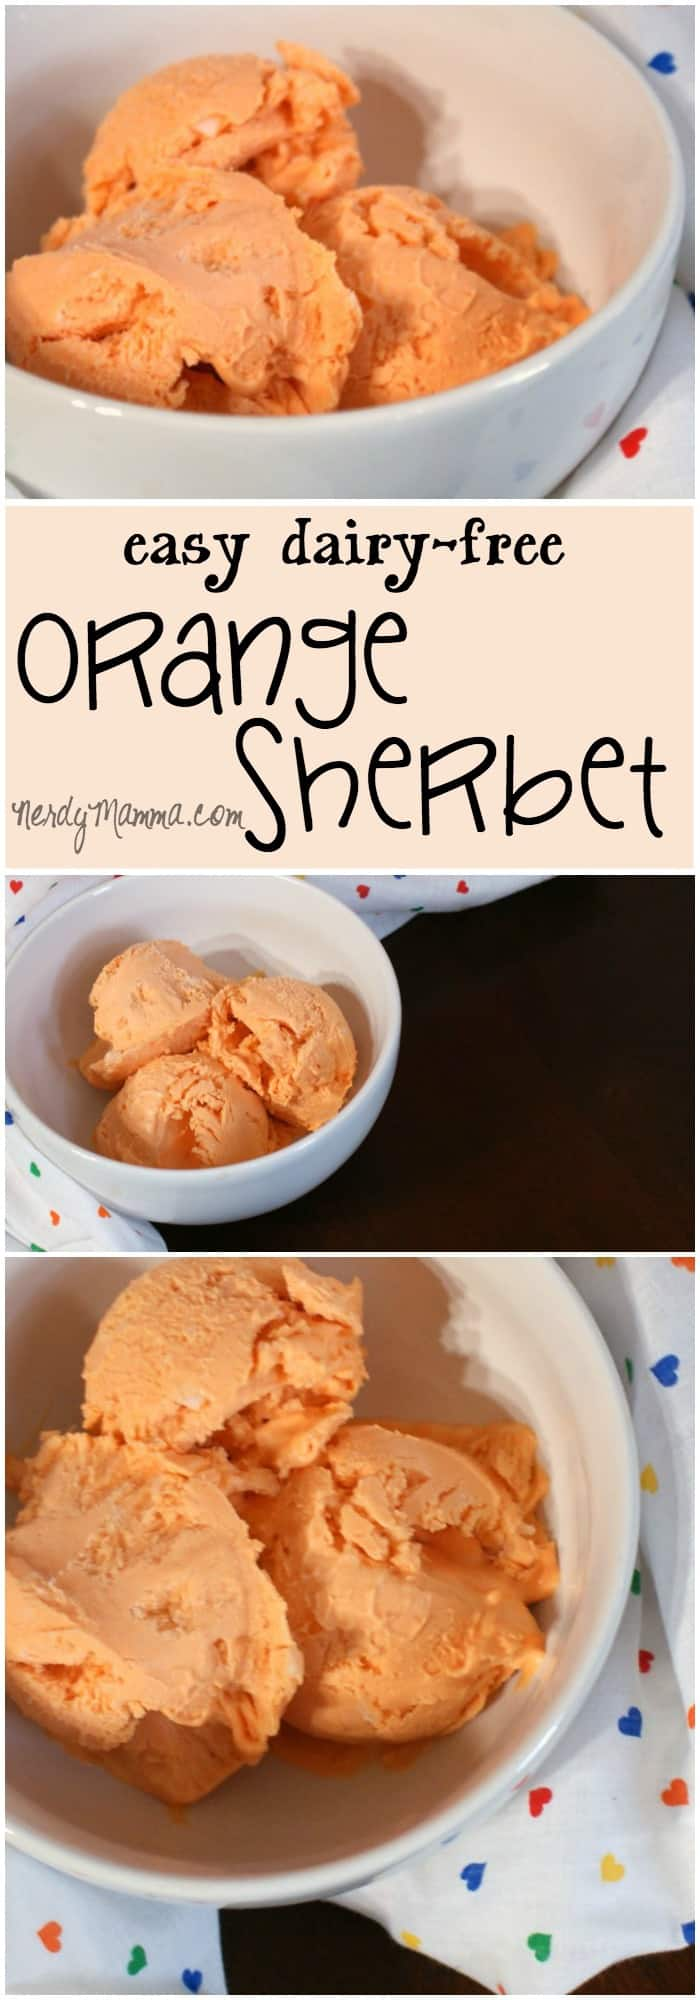 My kids are all about this delicious orange sherbet with no dairy. Yeah, that's right, dairy-free. So. Freakin'. Yummy.